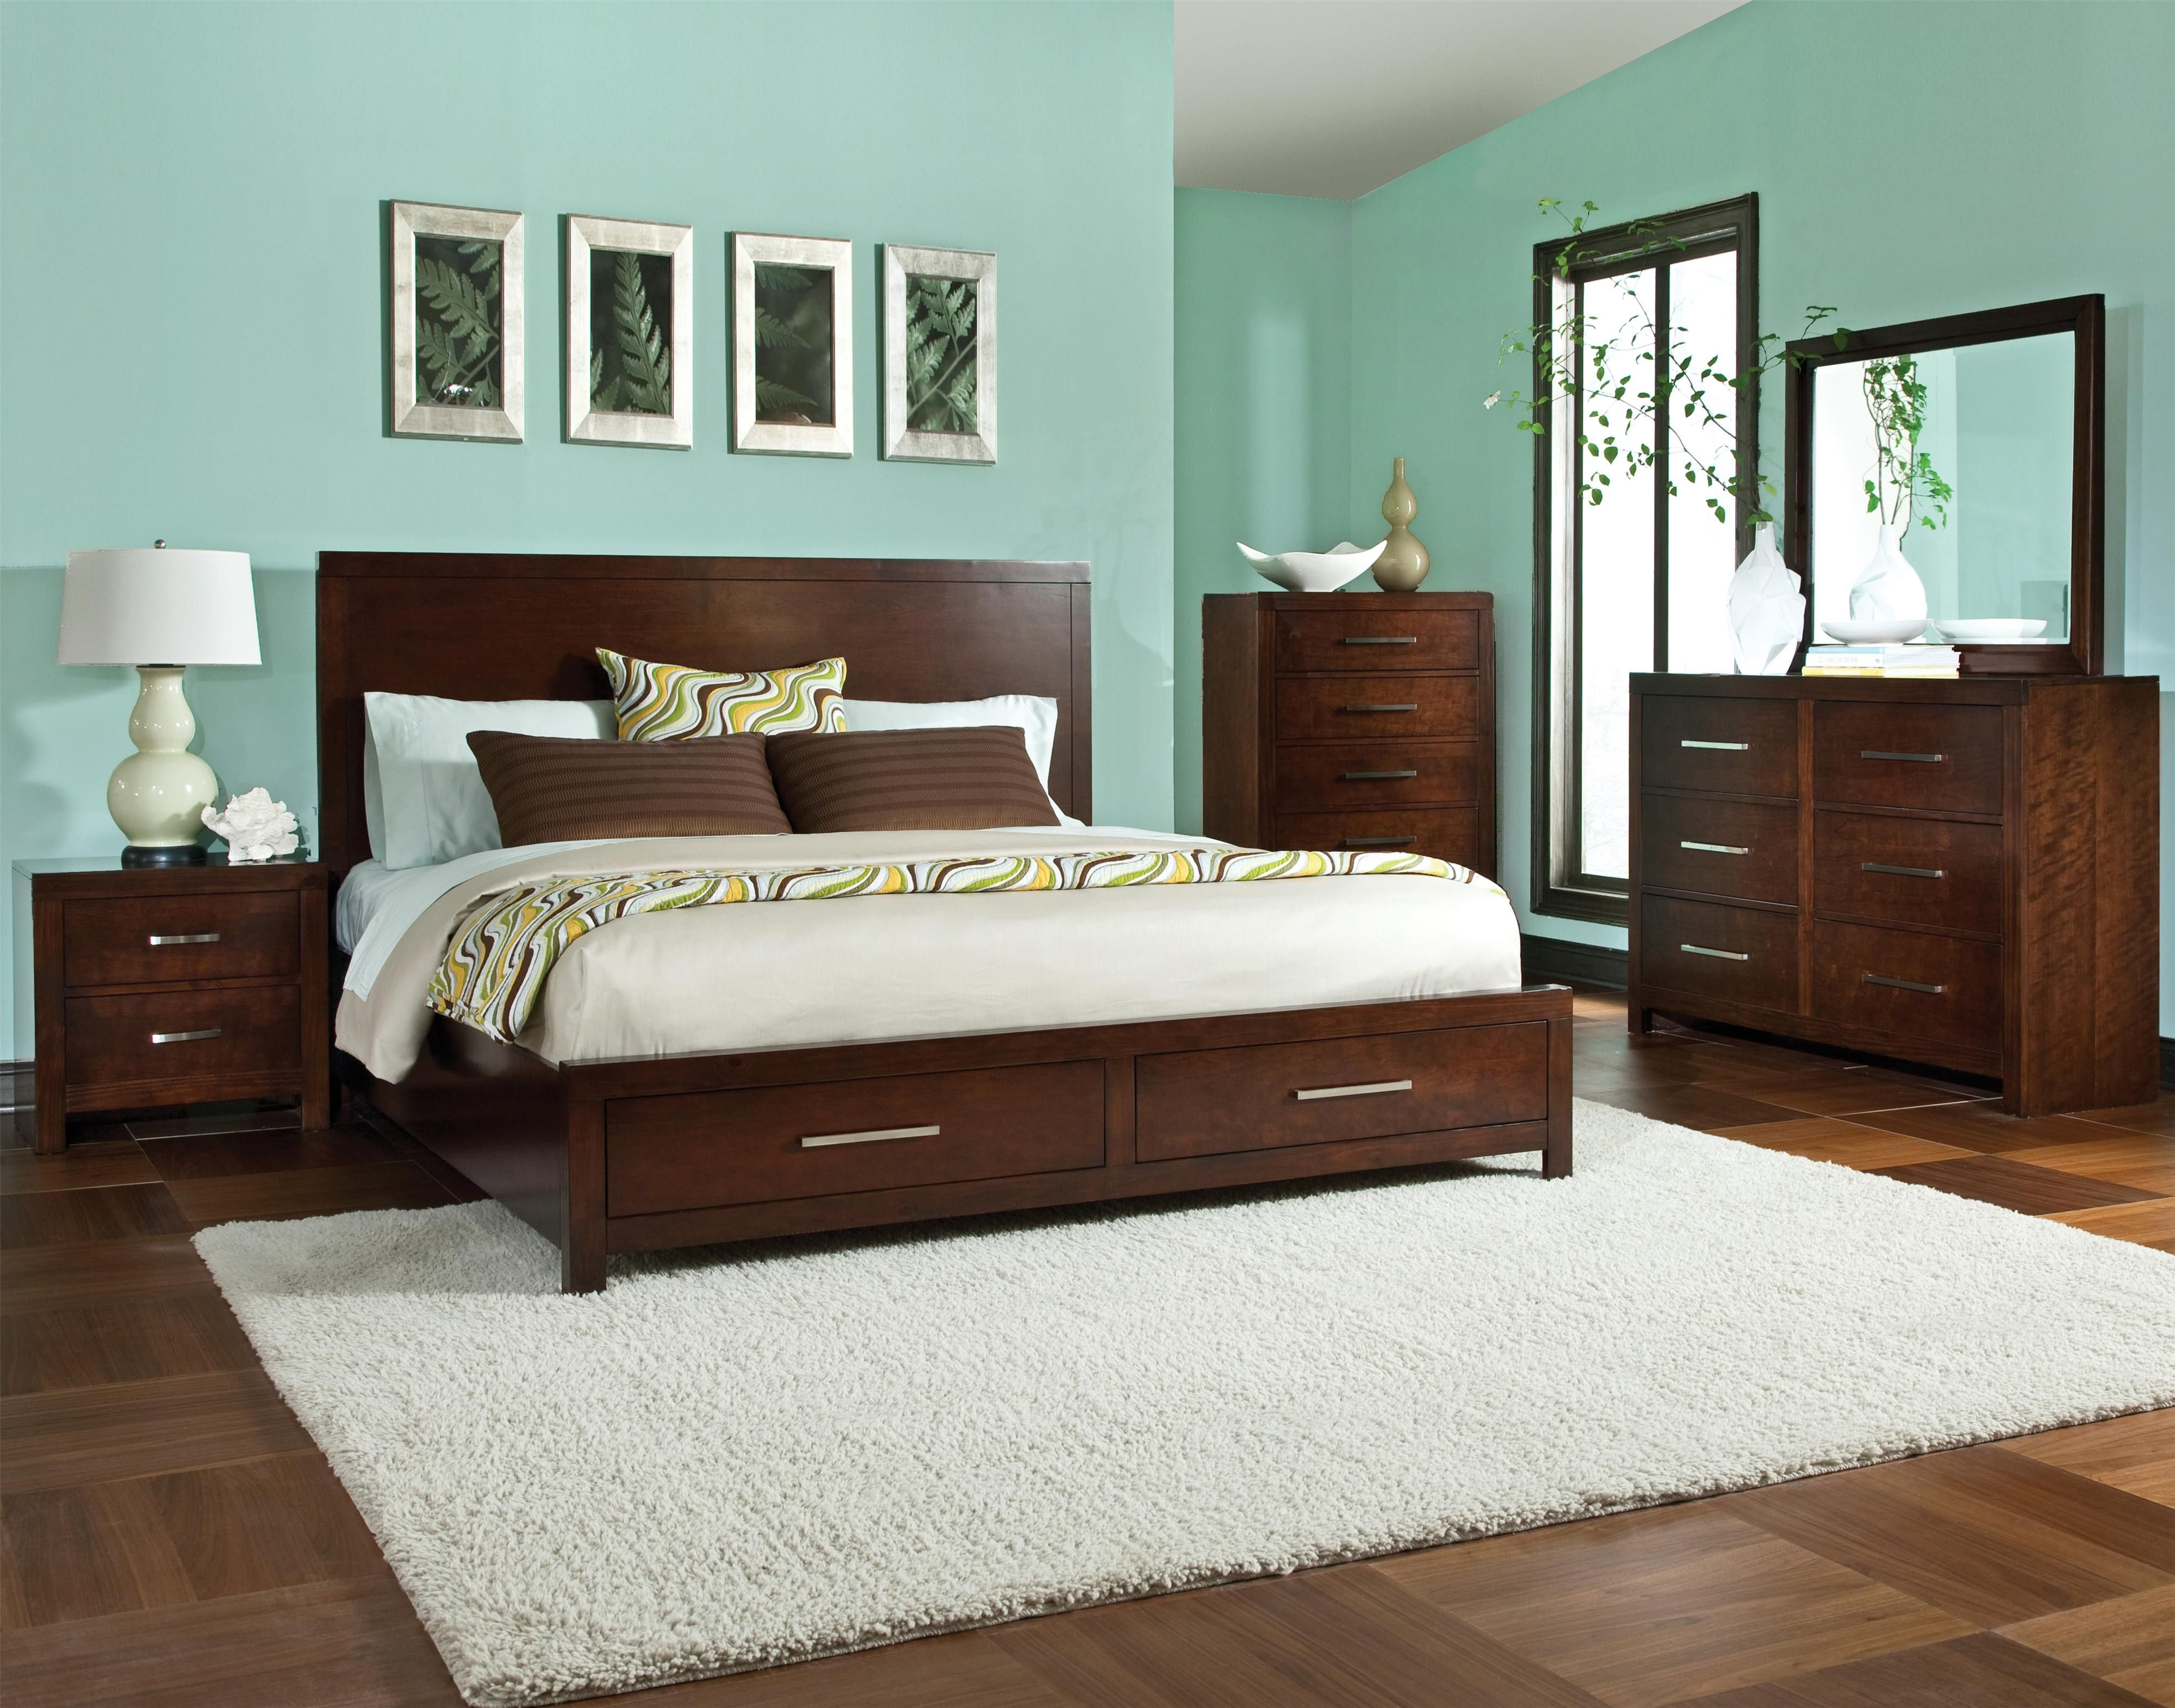 King platform bed with storage drawers love the simplicity of the